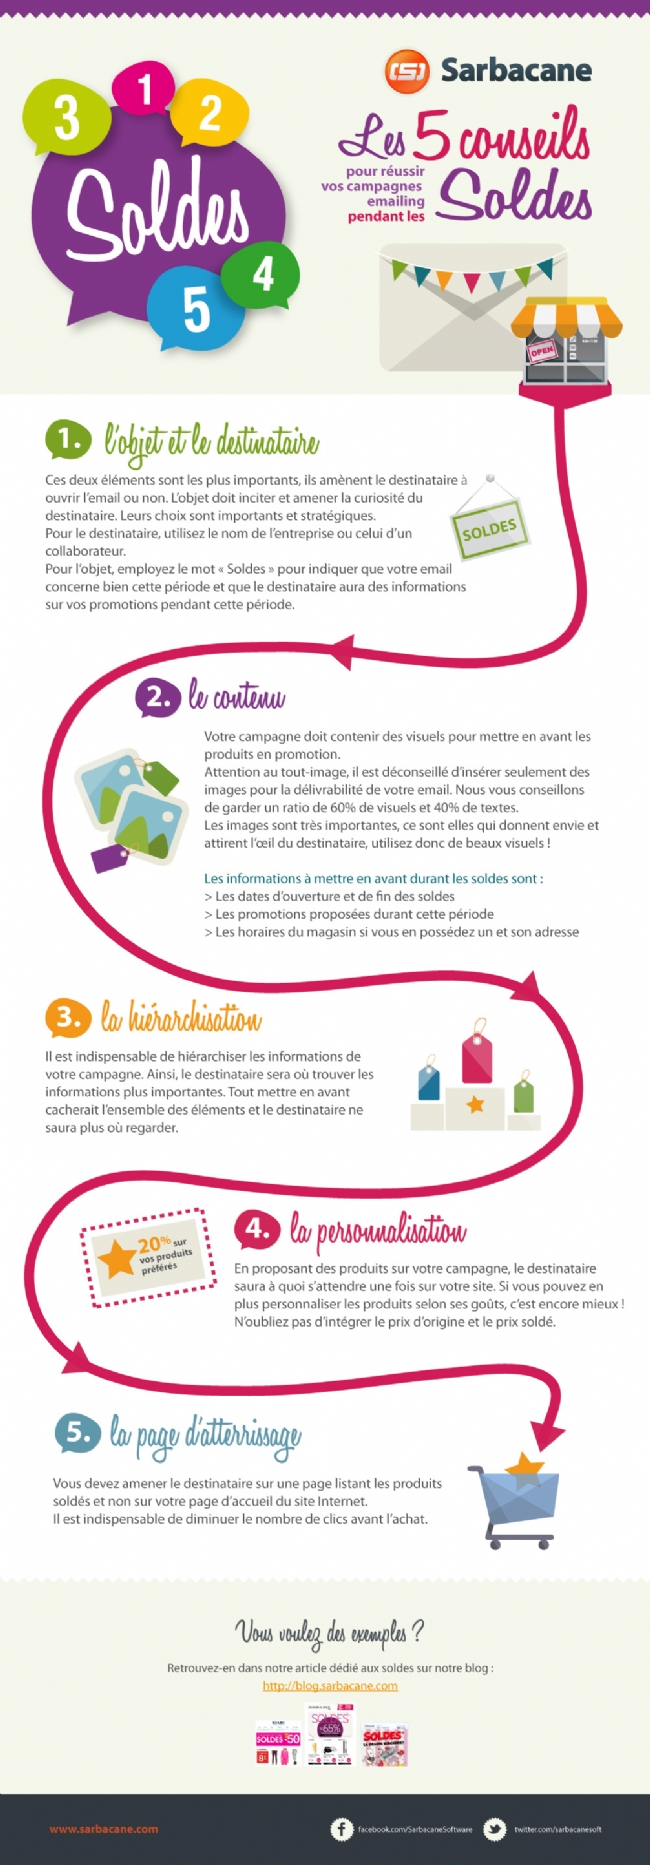 conseils-reussir-ses-campagnes-mailing.jpg